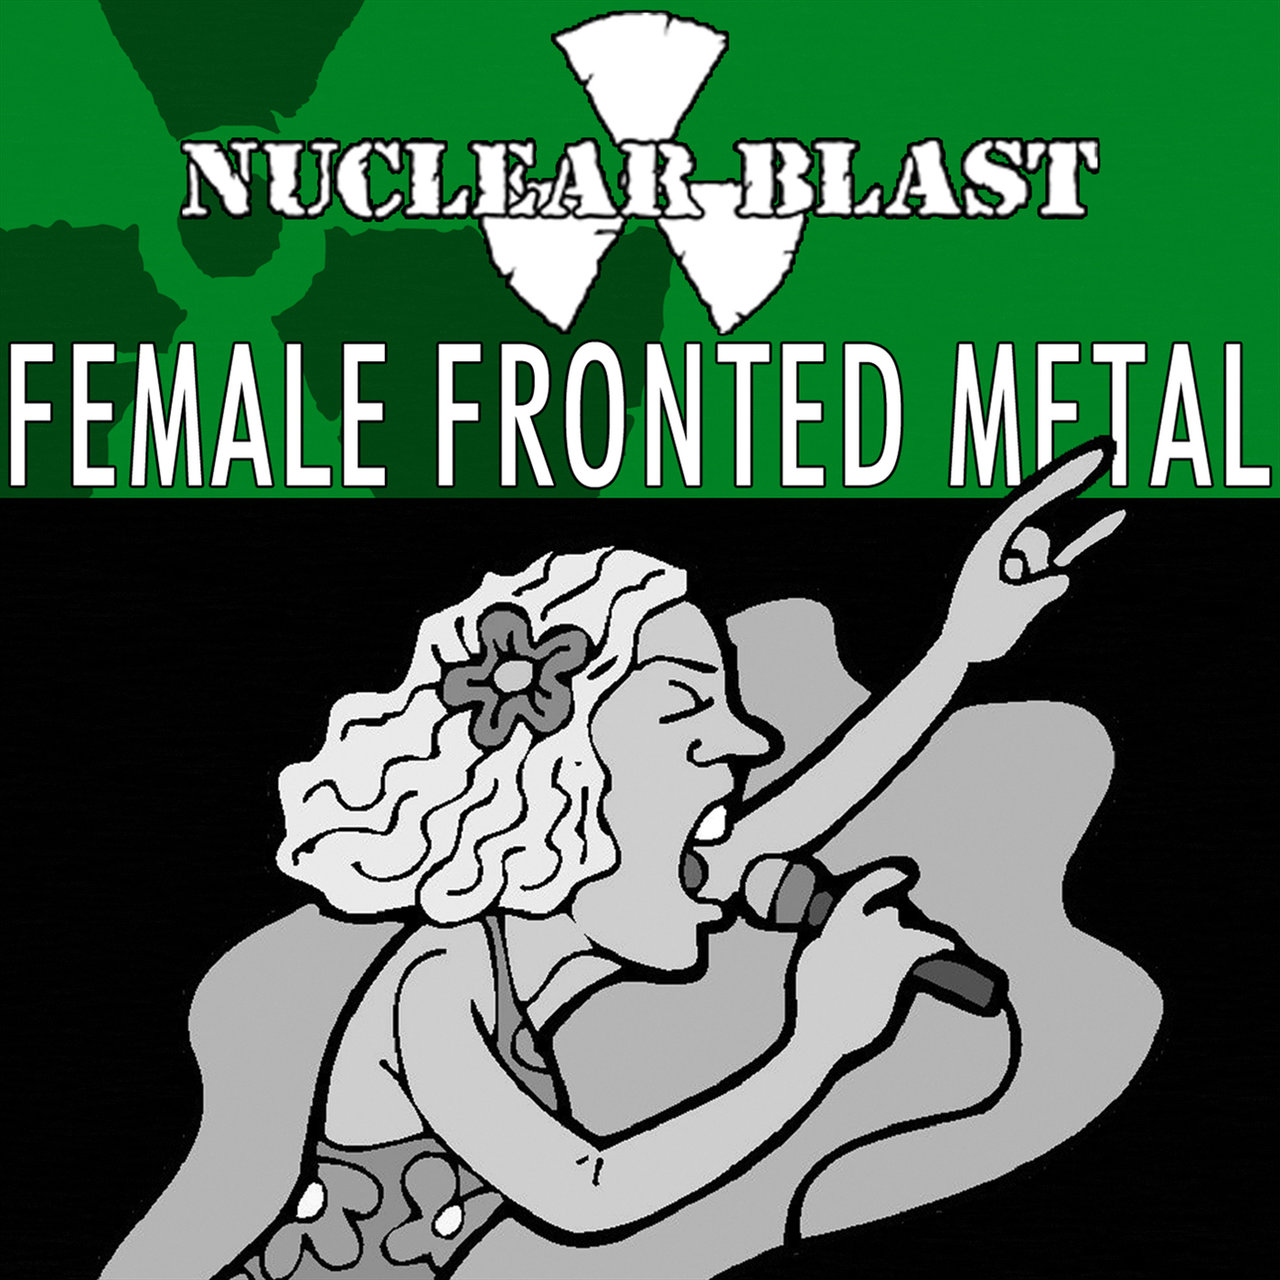 Nuclear Blast Presents Female Fronted Metal